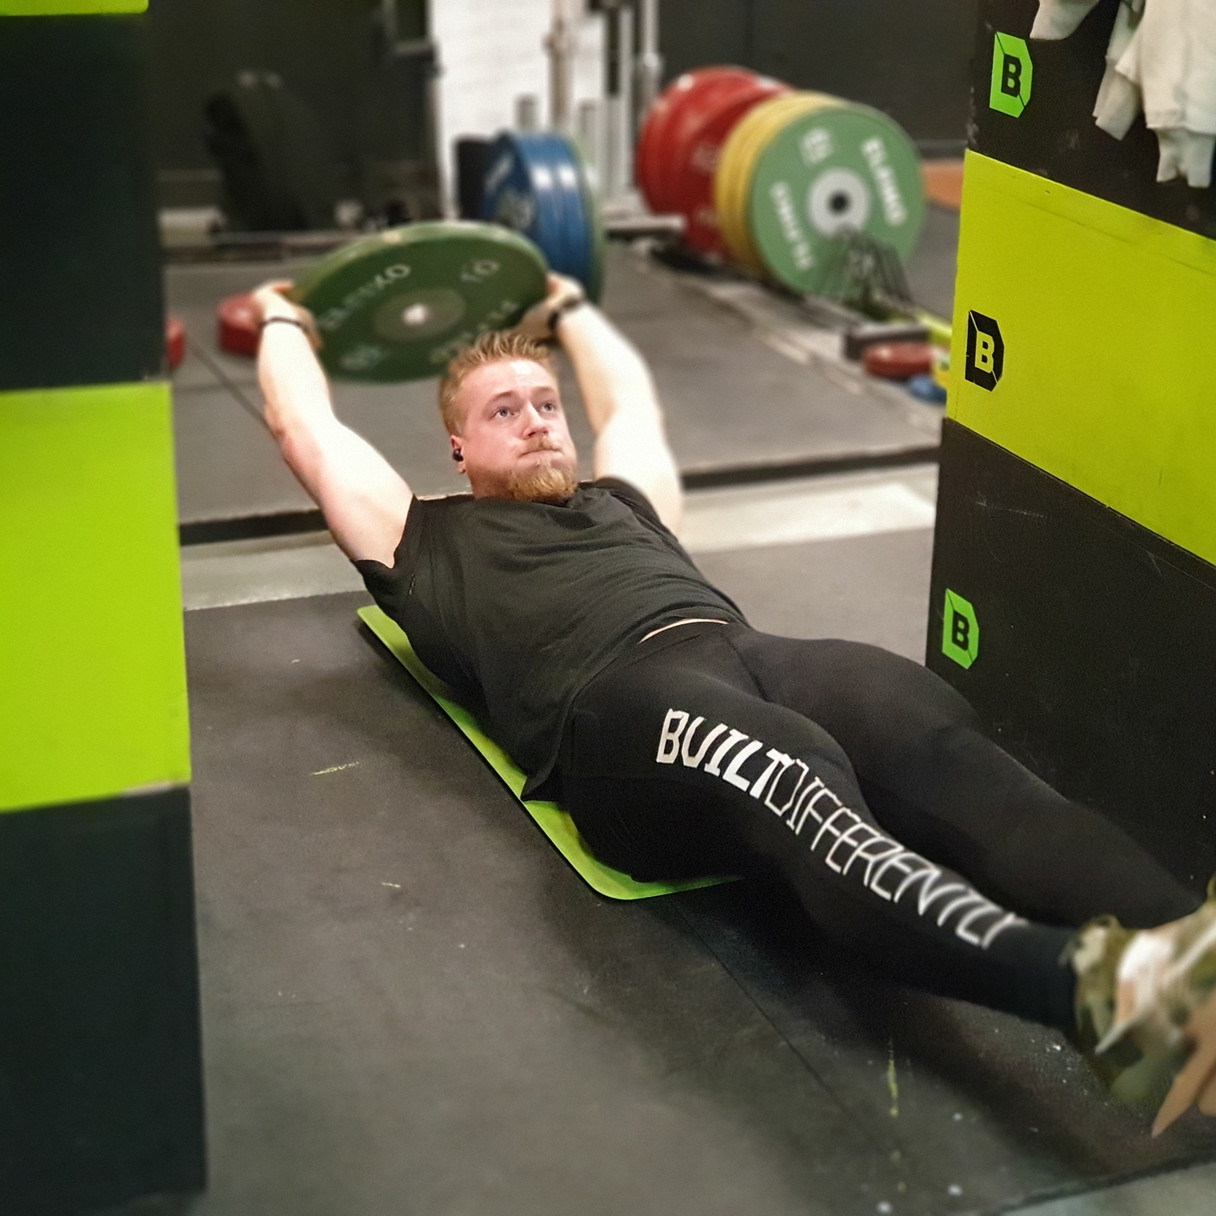 Resident Viking makes core strong